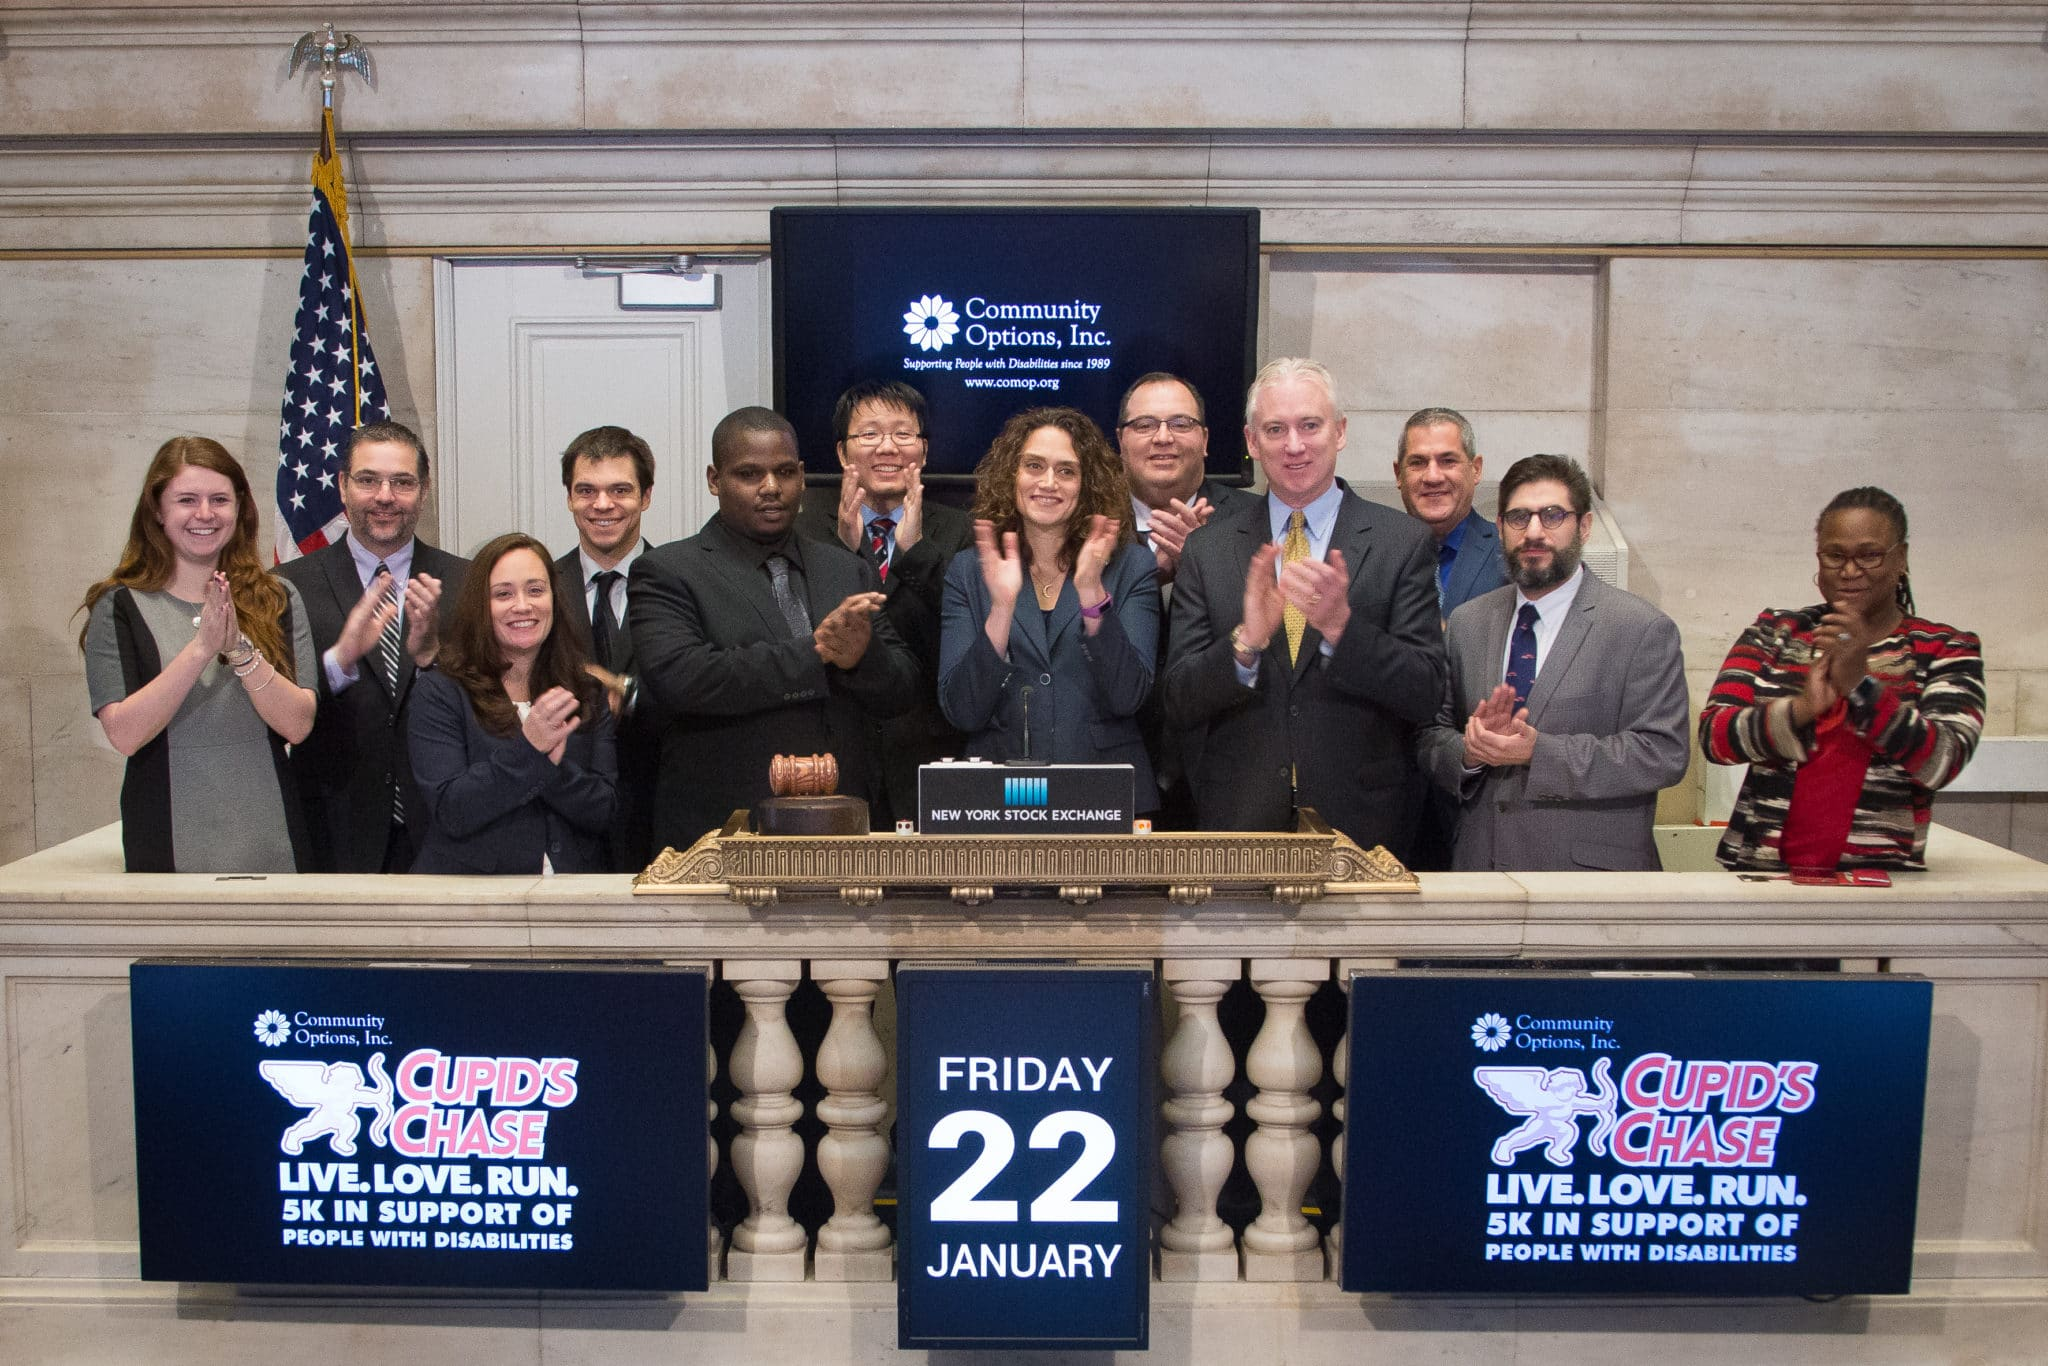 Robert Stack, President of Community Options, Inc., selected Roy King to ring the opening bell at the New York Stock Exchange, Friday January 22, 2016.